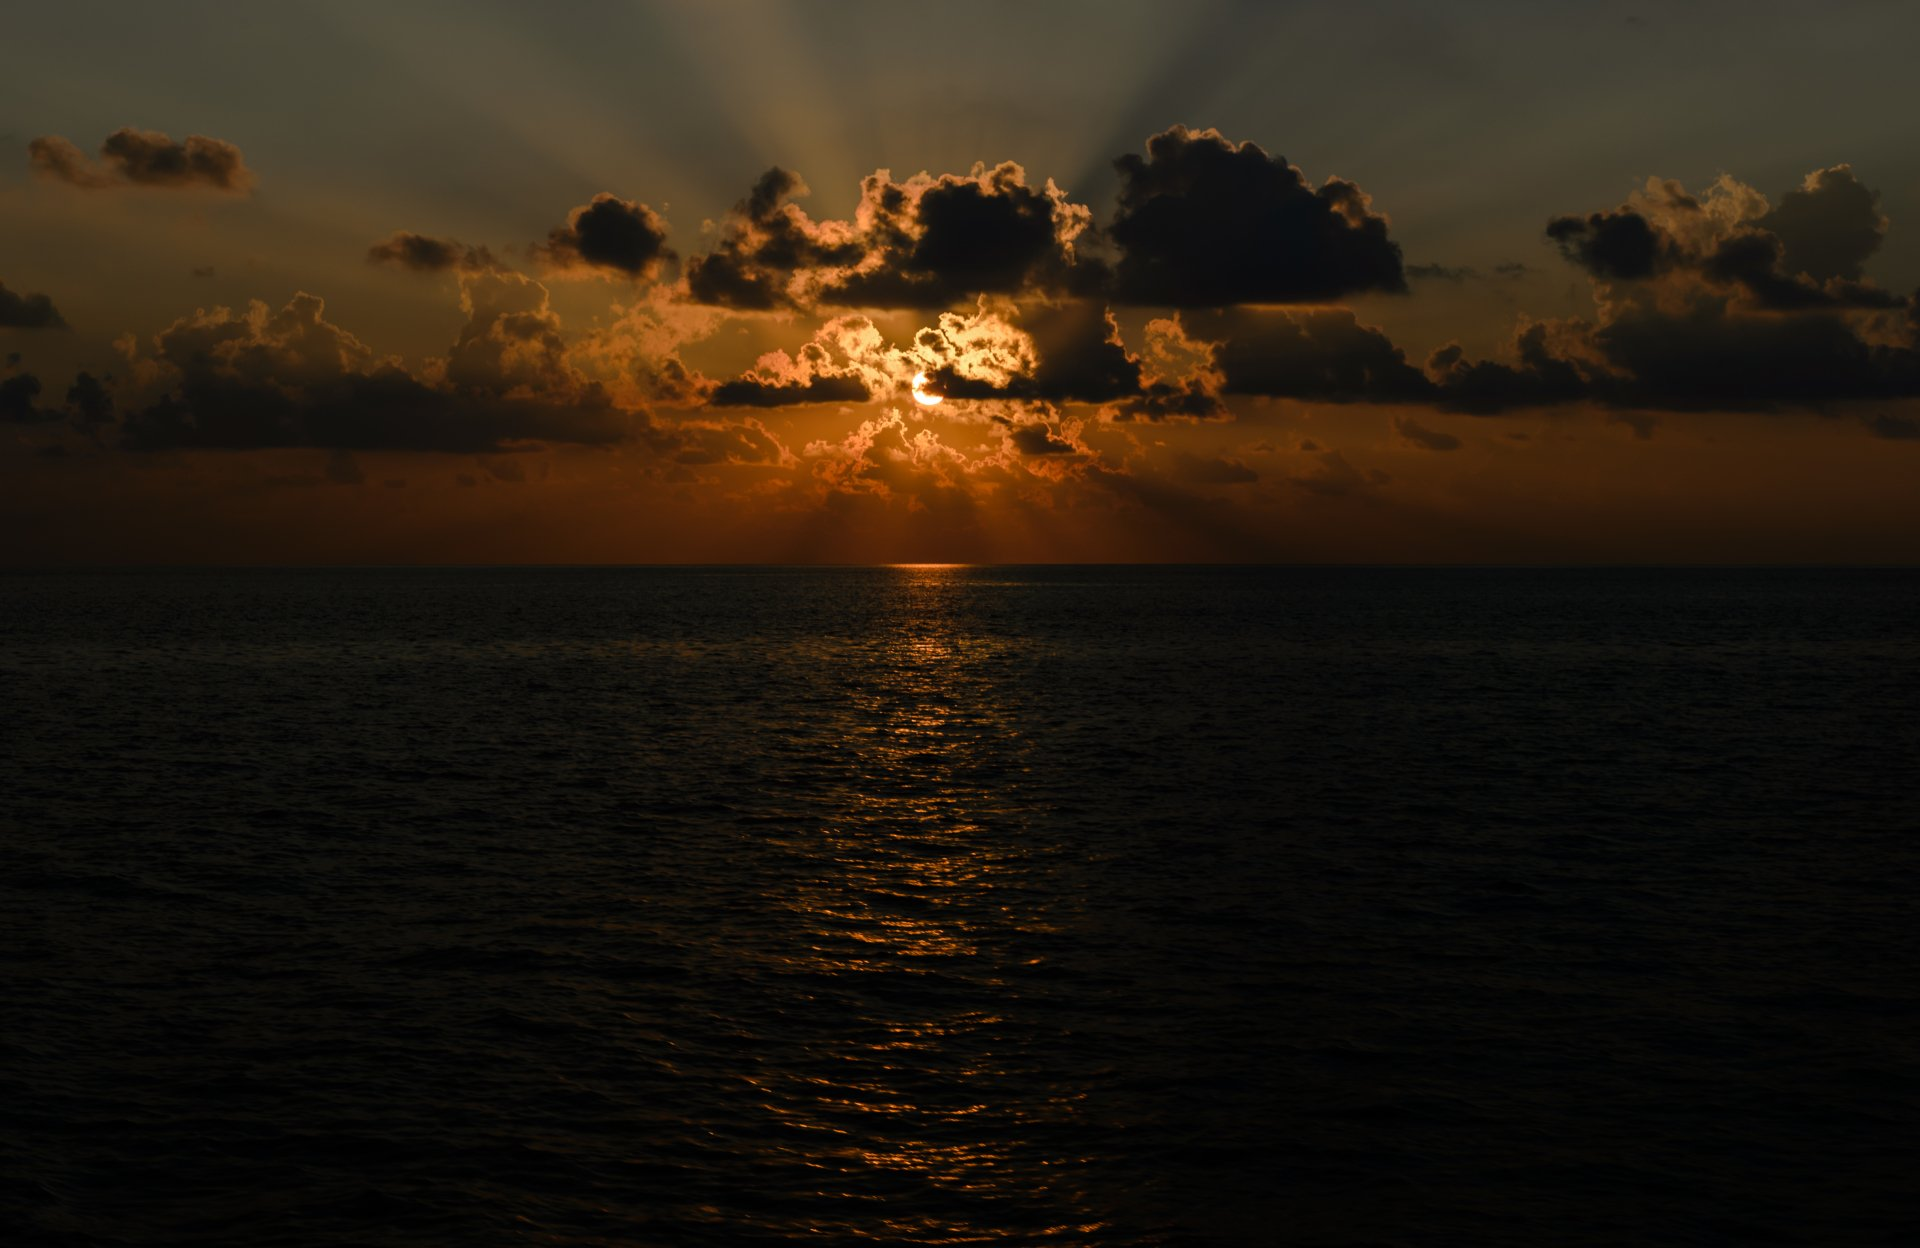 Earth - Sunset  Horizon Sun Sunbeam Ocean Cloud Wallpaper